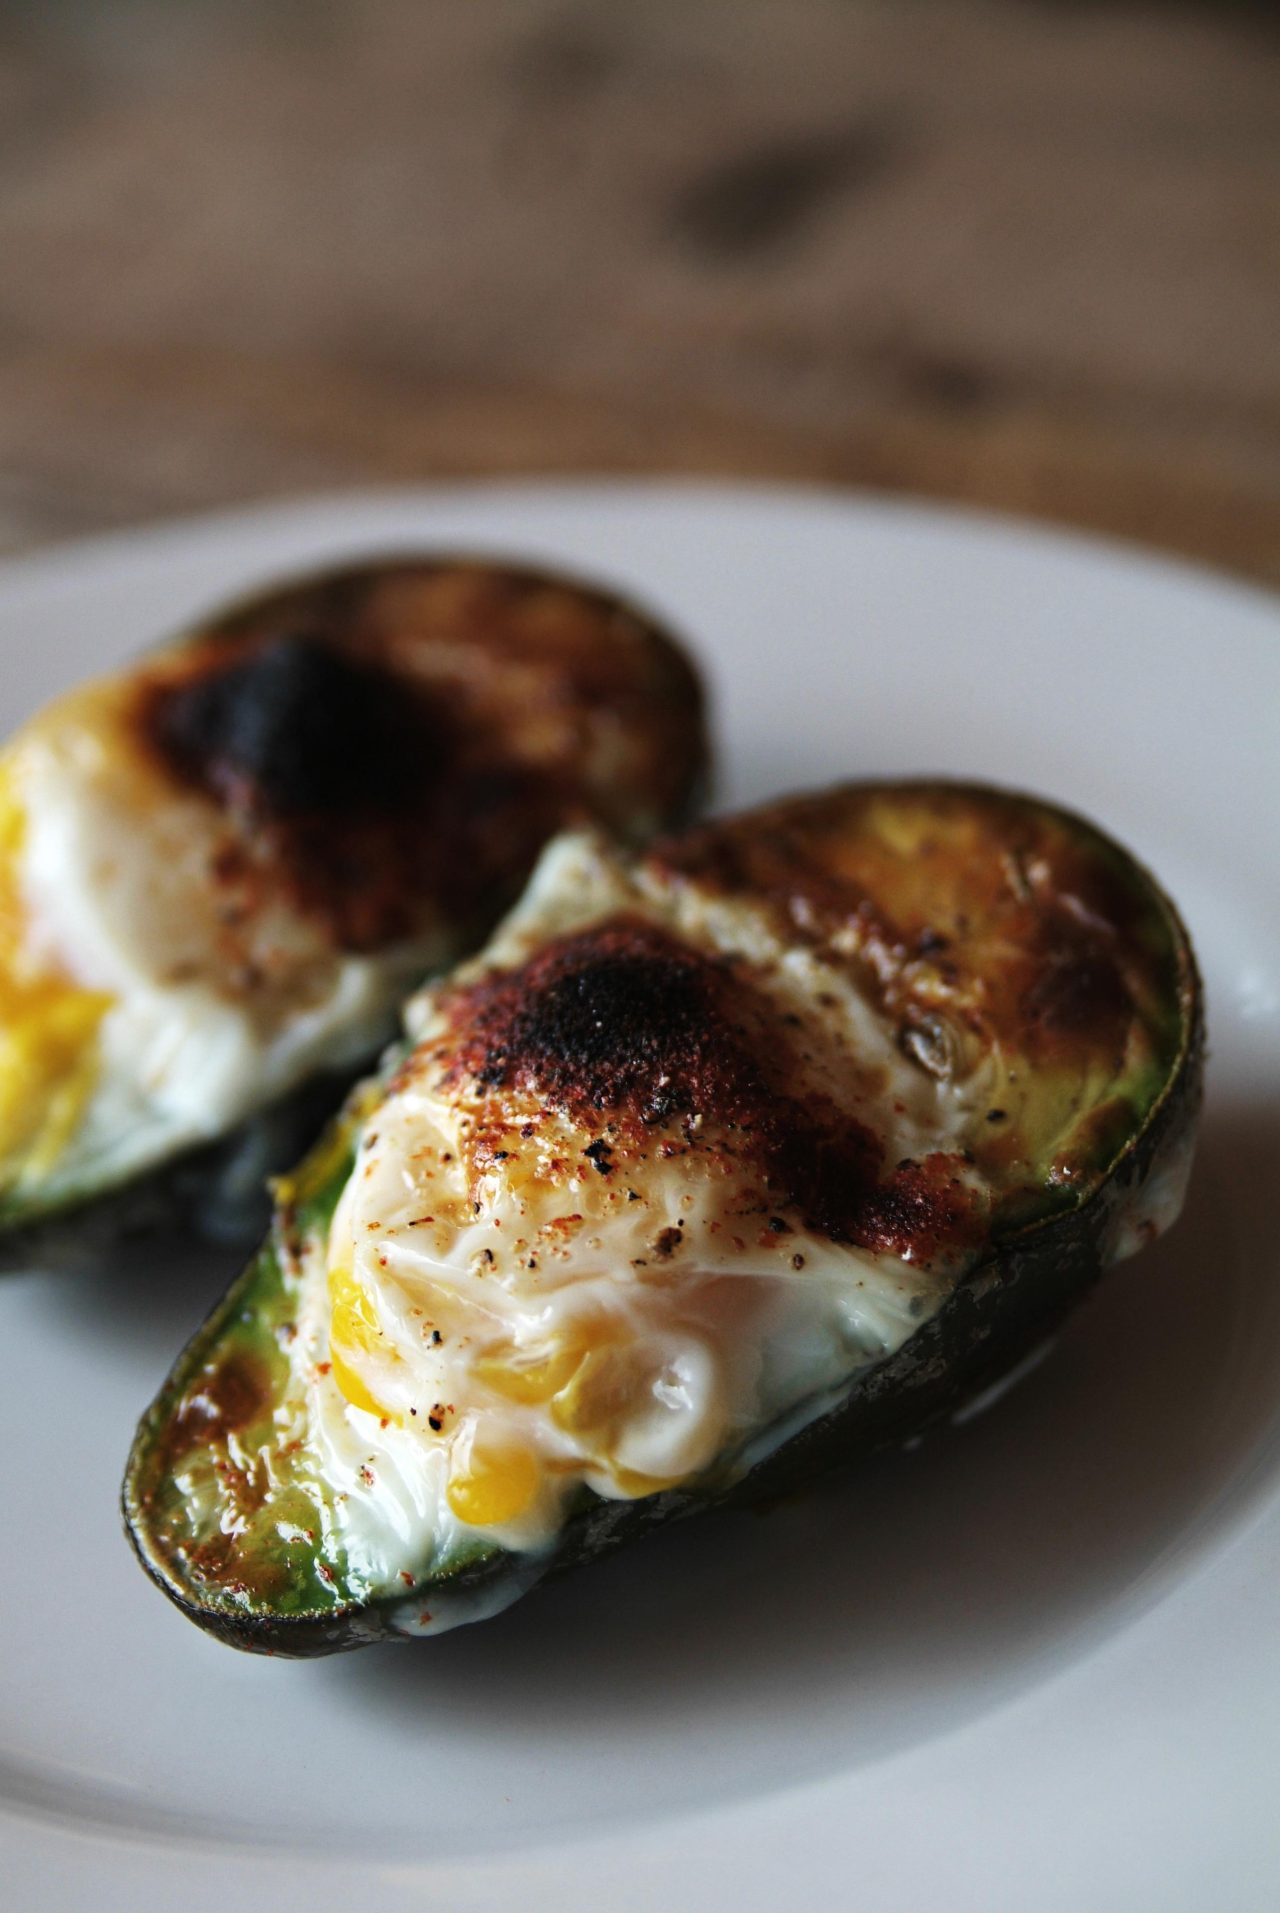 baked avocado and egg: by me This morning for breakfast I tried this recipe. Now, although it looks really delicious in this picture that I took, mainly because I removed it from the shit storm that was left after cooking, I would like to write a little bit about the actual experience of making it. If you refer to the recipe as linked above, it says, scoop out the pit, crack in an egg, and cook. What actually happens is this; Scoop out the pit revealing only a tiny hole in the Avocado, try cracking your egg into it only for almost all of it to run all over the baking sheet, then swear a lot, scoop out almost half of the Avocado in order to get the egg to fit only to find it is still not a big enough space and egg white oozes all over the place. Sprinkle with salt, pepper, and paprika, then bake in an oven until the egg is done to your satisfaction. While this is an interesting recipe and I really liked the idea it was a pain in the arse to actually make. The recipe should have read like this; 1. Get the biggest Avocado you can find, preferably as big as your head. 2. Get the smallest egg you find, preferably a Quail egg, because quite          honestly, that's all that will really fit. 3. Continue recipe as instructed.